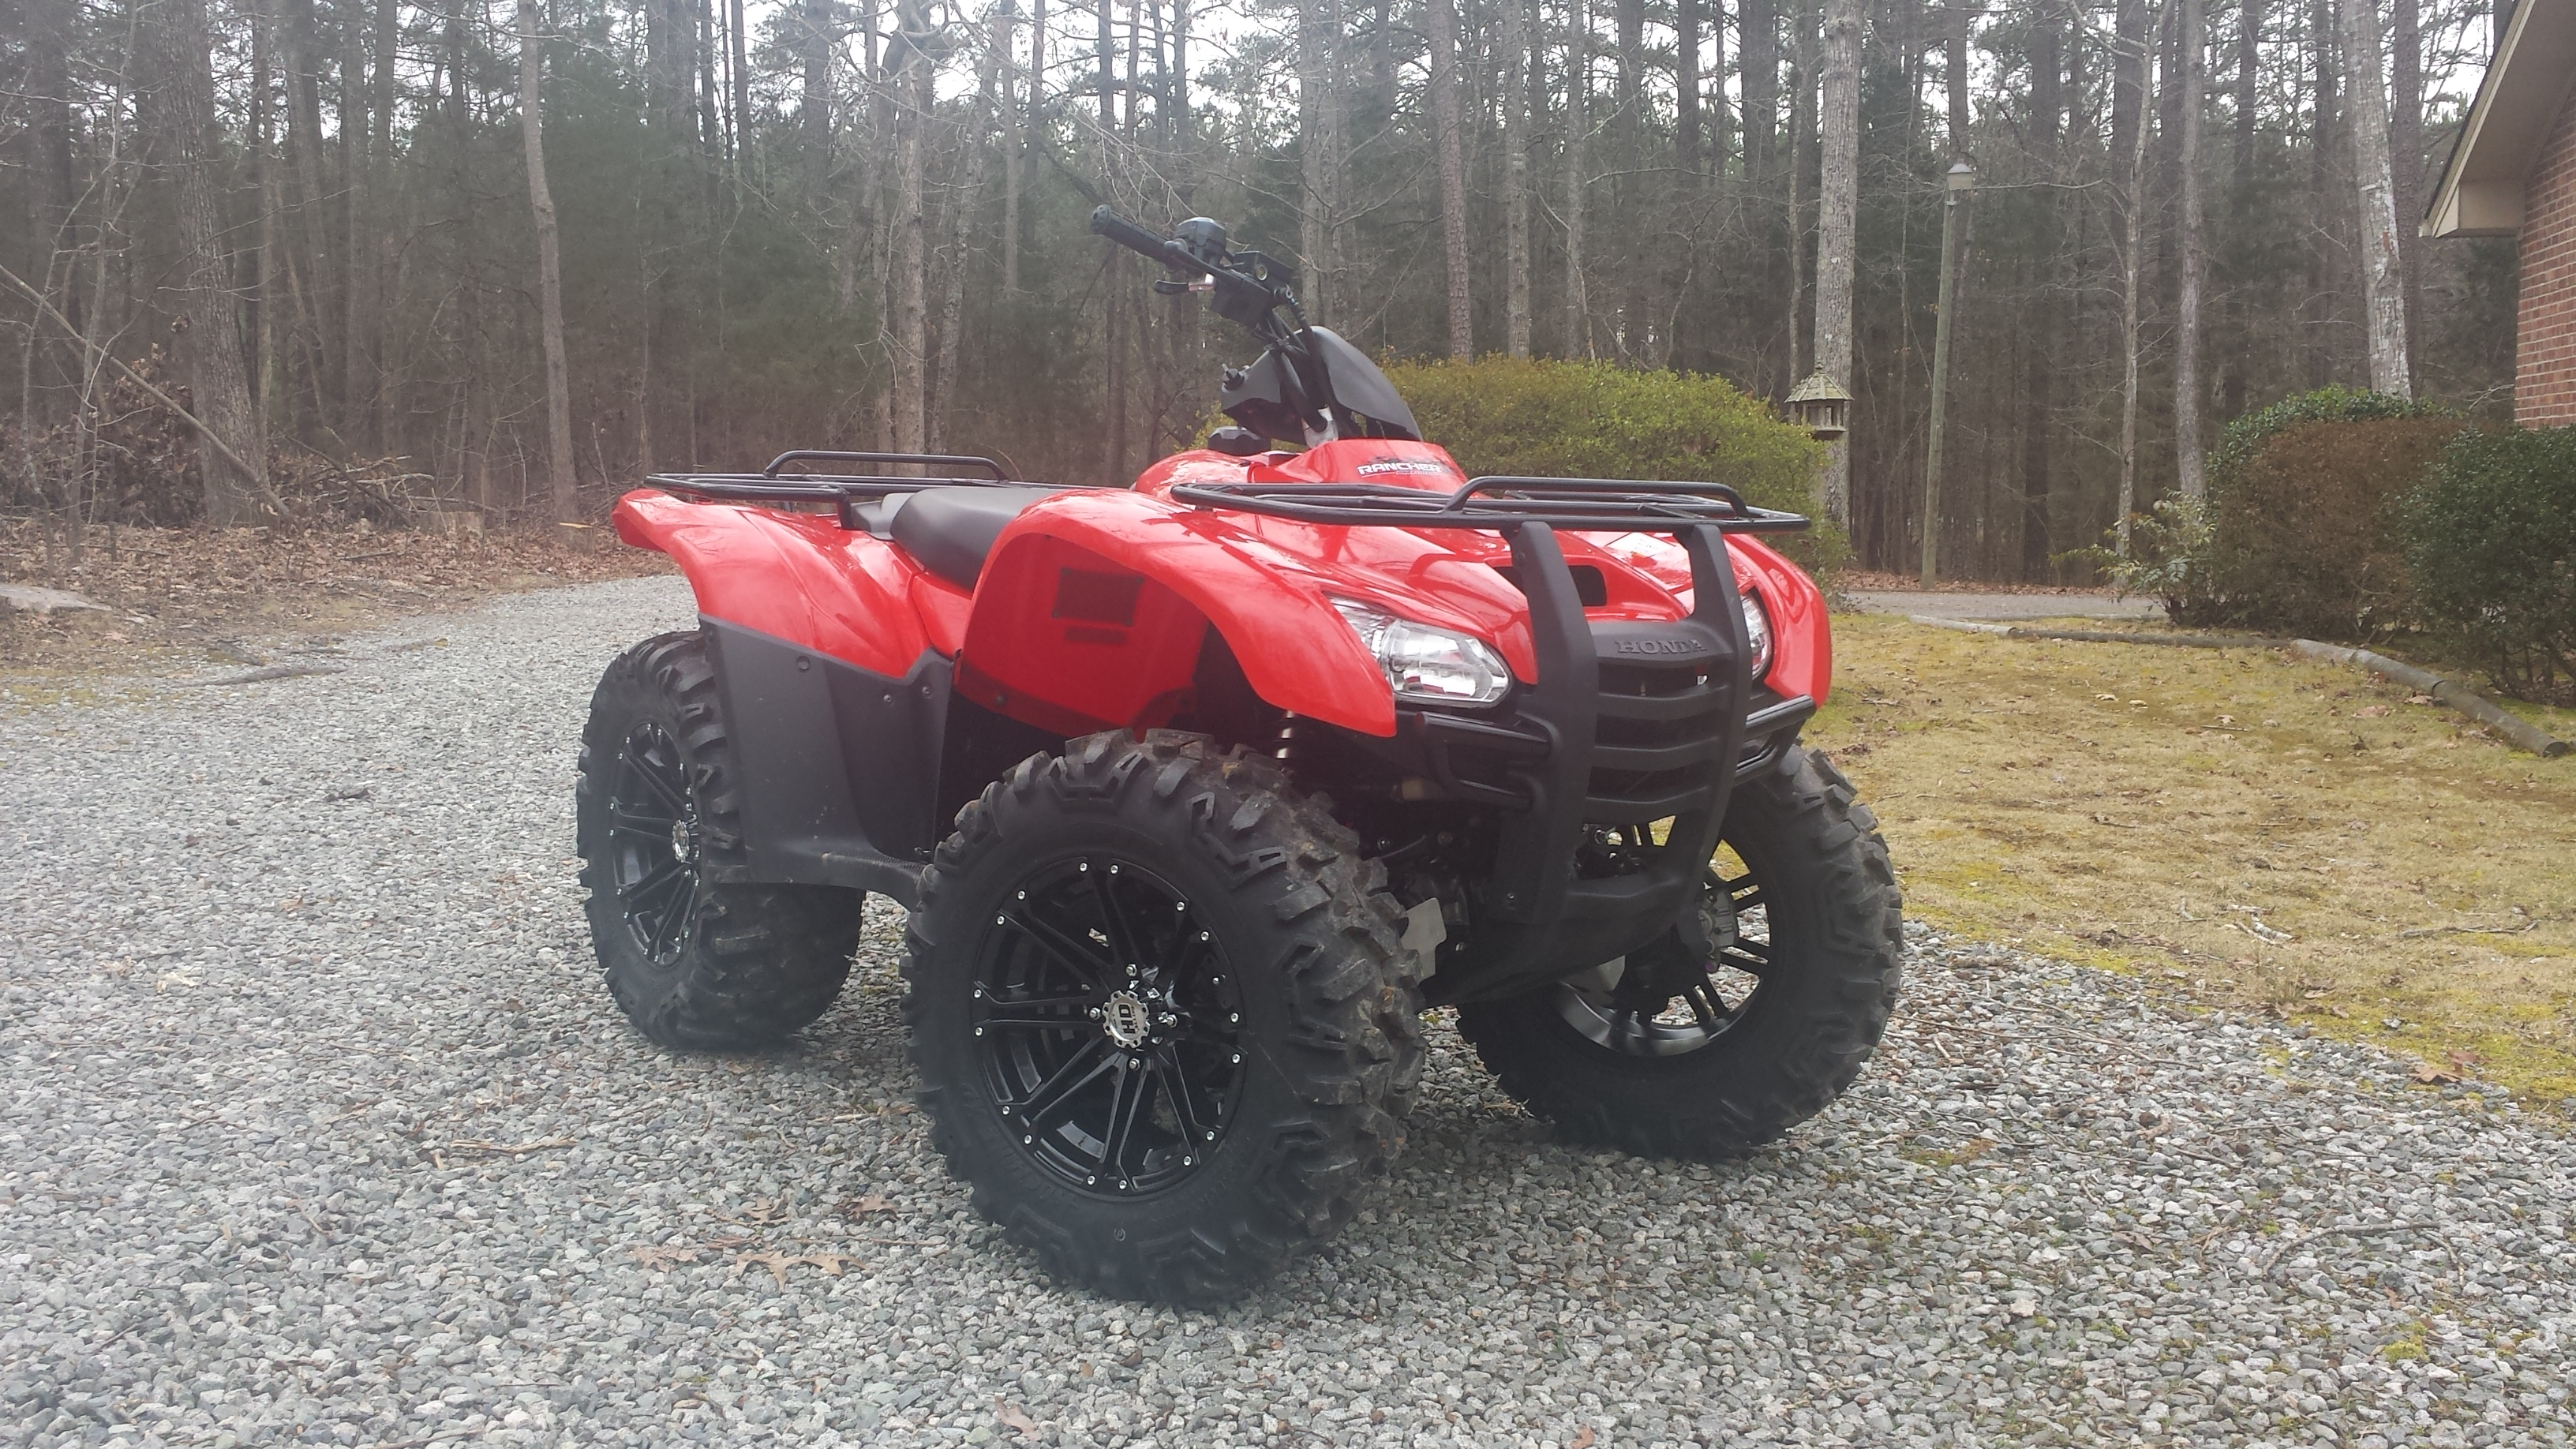 Uatv Accessories X additionally Hqdefault together with Maxresdefault together with Honda Rancher Performance Atv Muffler Exhaust High Flow Air Filter together with D New Rims Tires My Rancher Irs. on 2015 honda rancher 420